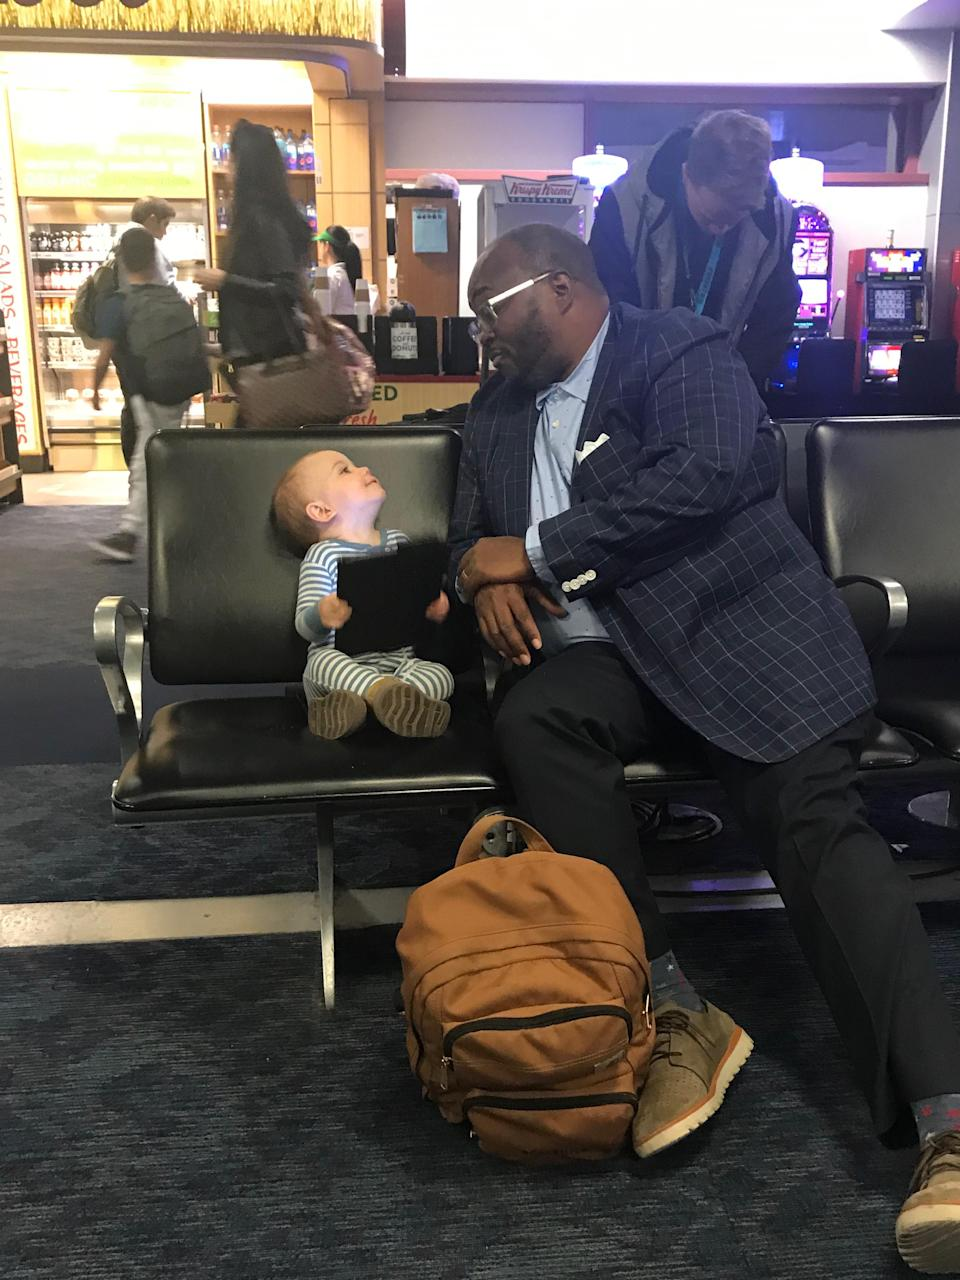 Kevin Armentrout said a total stranger at the airport befriended his young daughter. (Photo: Courtesy of Kevin Armentrout)